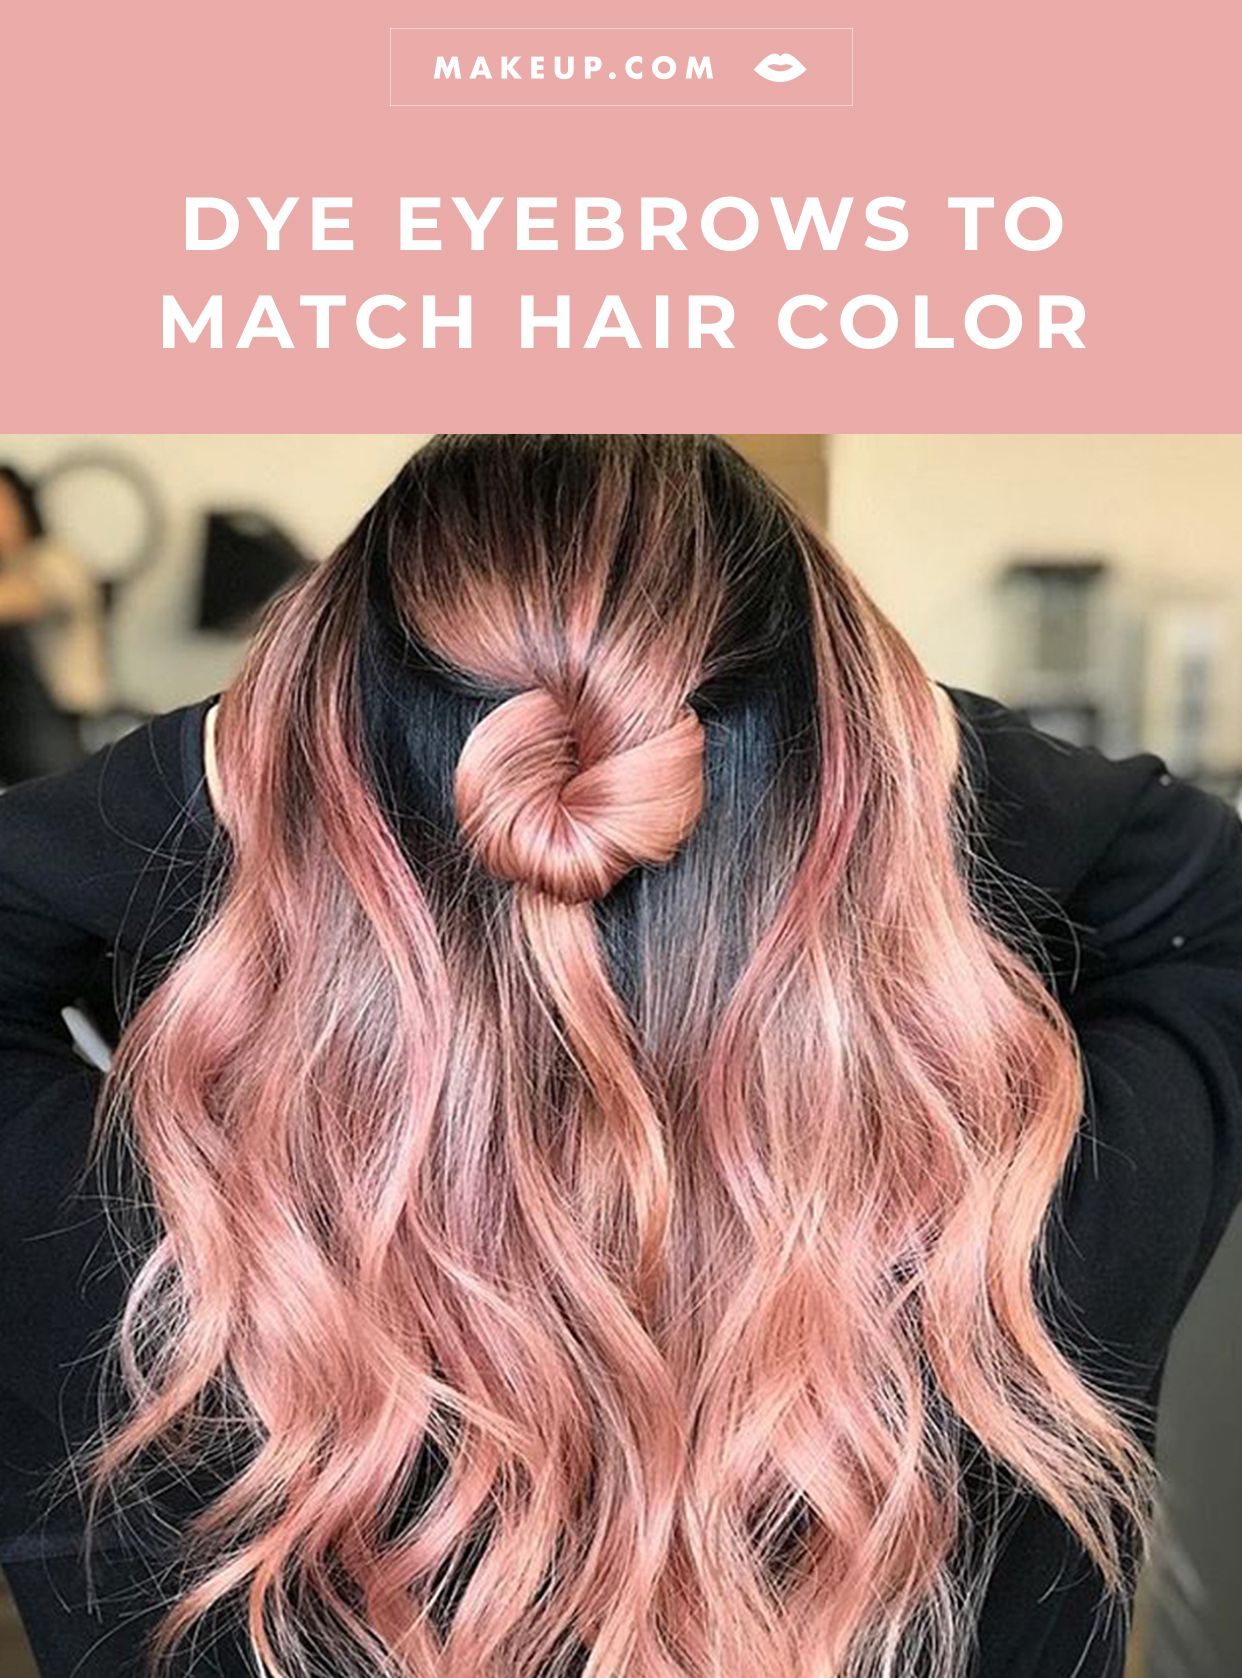 When To Dye Your Eyebrows To Match Your Hair According To A Celebrity Hairstylist Makeup Com By L Oreal Dye Eyebrows Colored Hair Tips Celebrity Hair Stylist